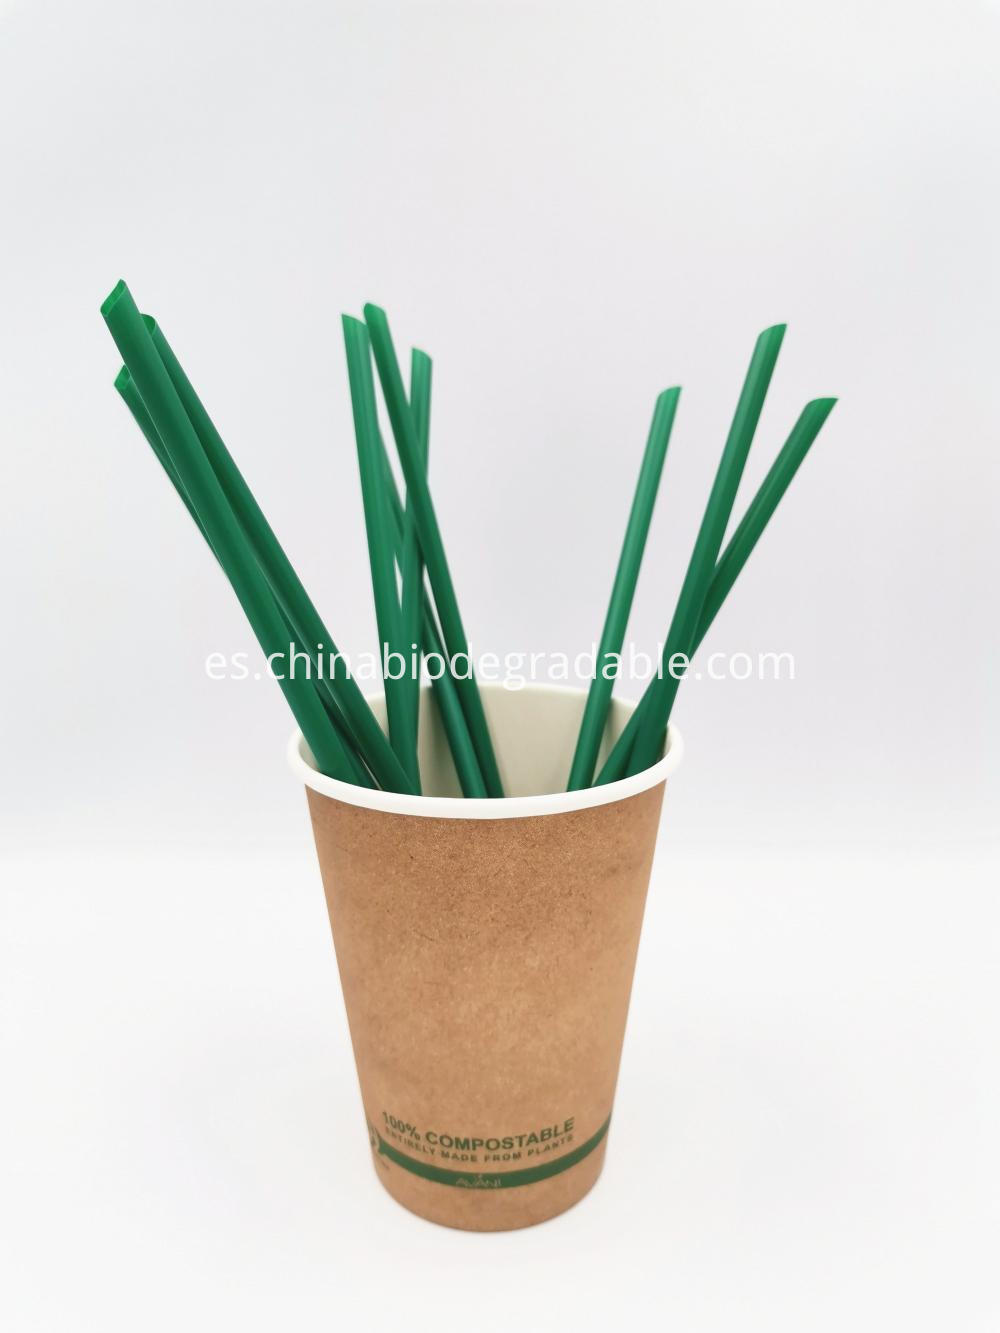 Cornstrach 100% Natural Plant Eco Straws